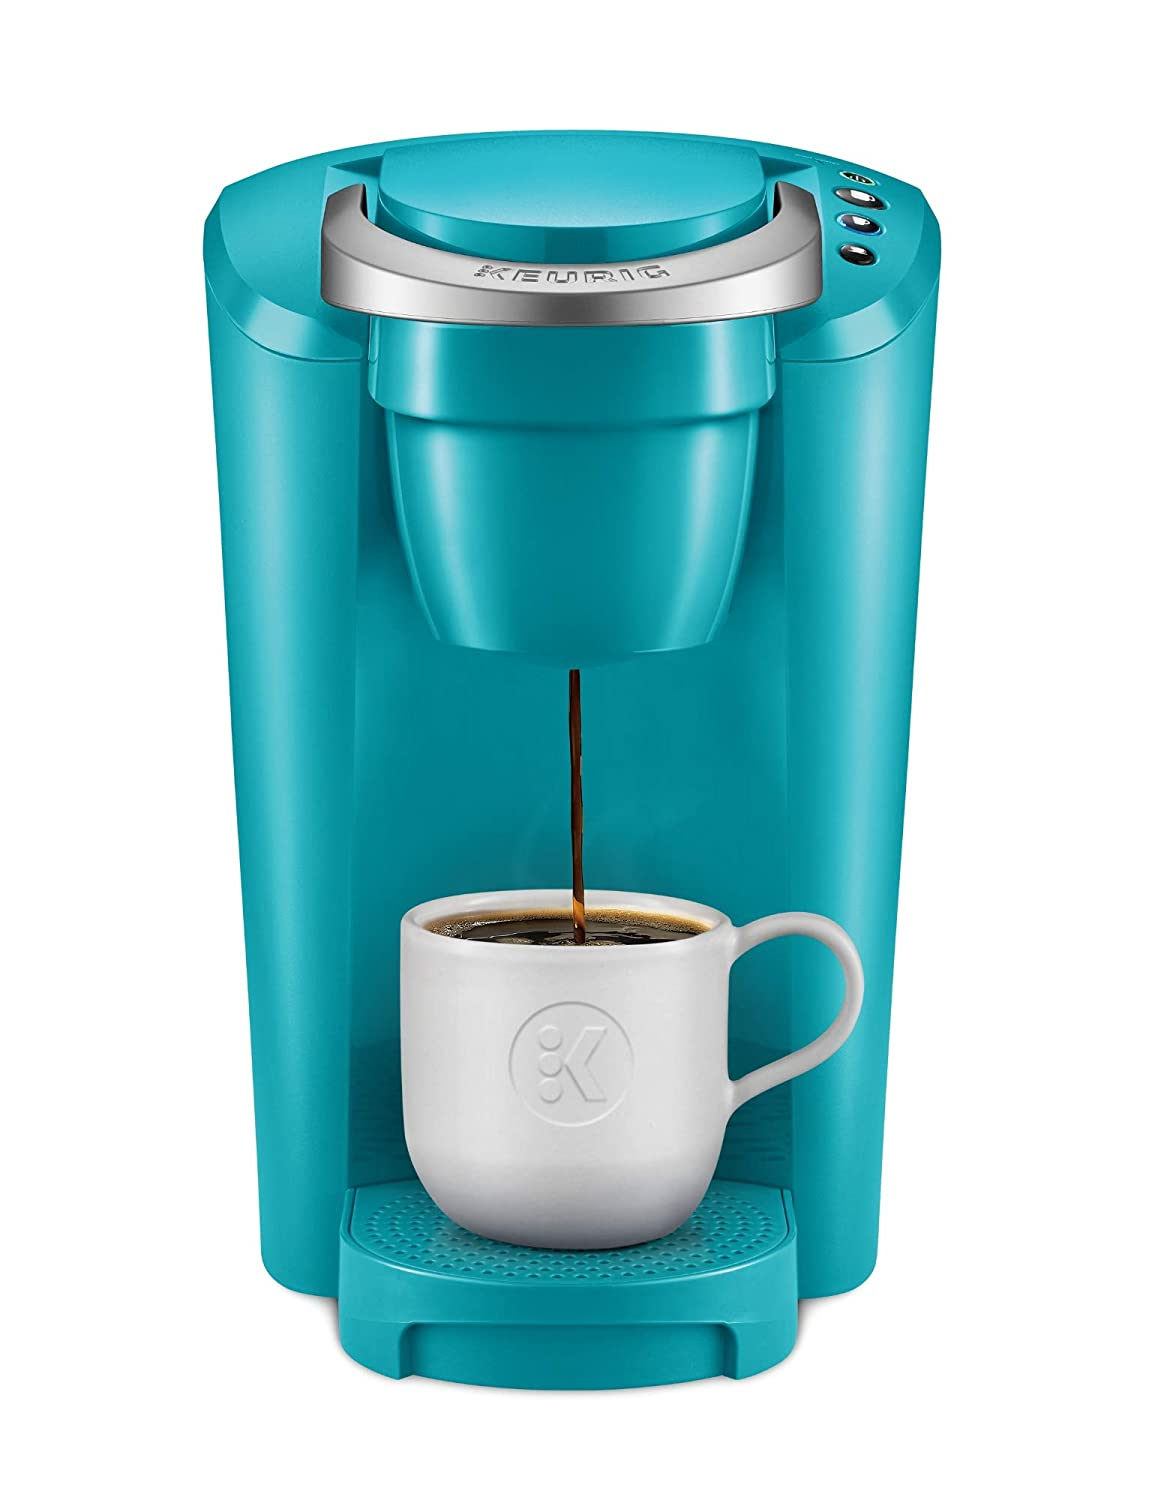 Top 10 Best Single-Serving Coffee Makers